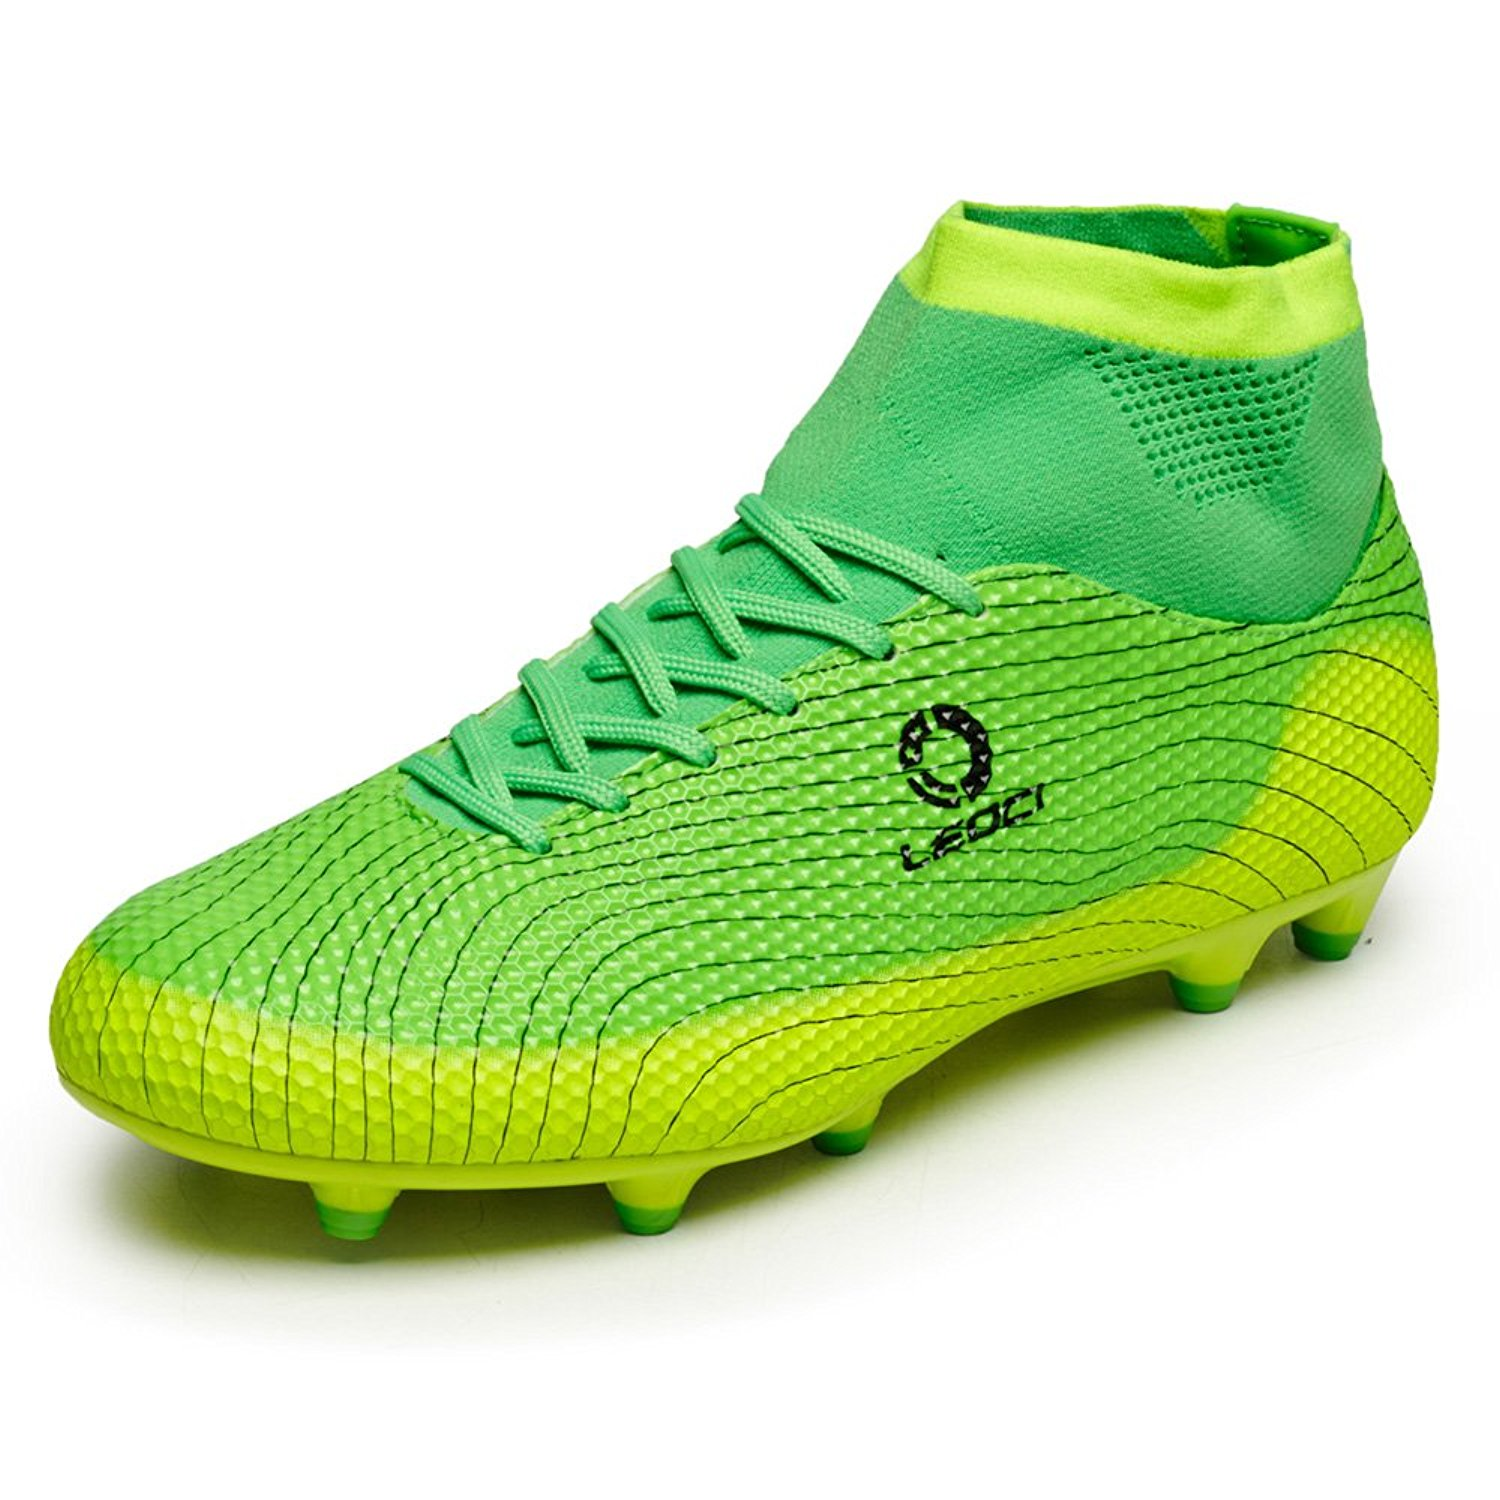 bae72d90cb1 Get Quotations · Anduode Boys  Athletic Firm Ground Soccer Cleats High Top  Indoor Soccer Shoes(Little Kid